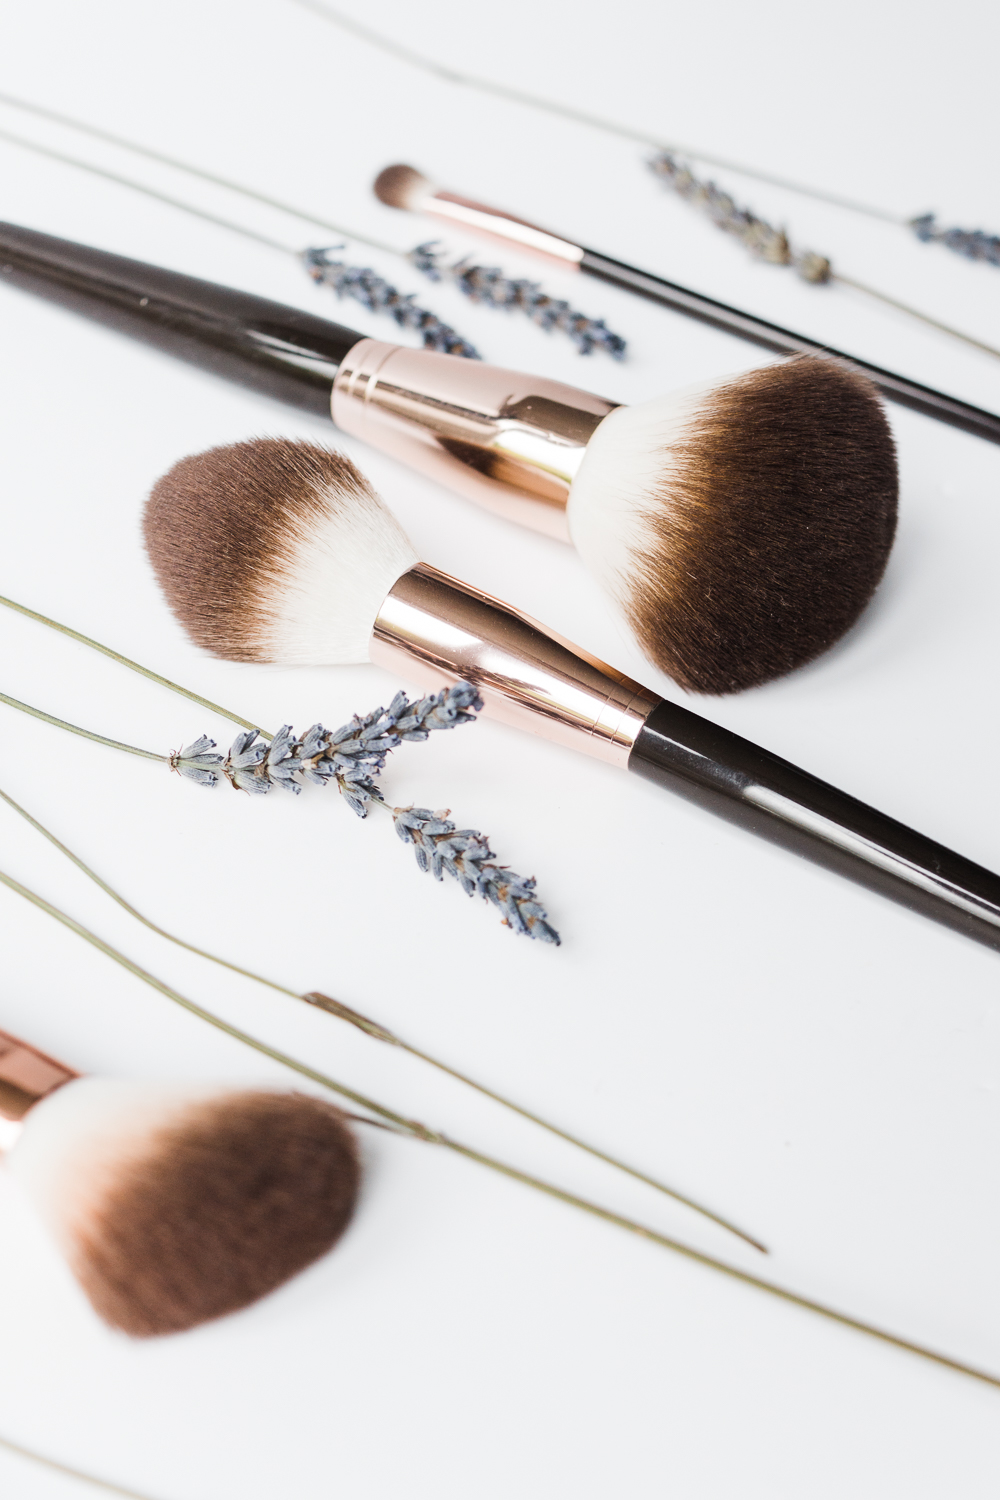 Rosie-for-autograph-rose-gold-makeup-brushes-review-Barely-there-beauty-blog-photography